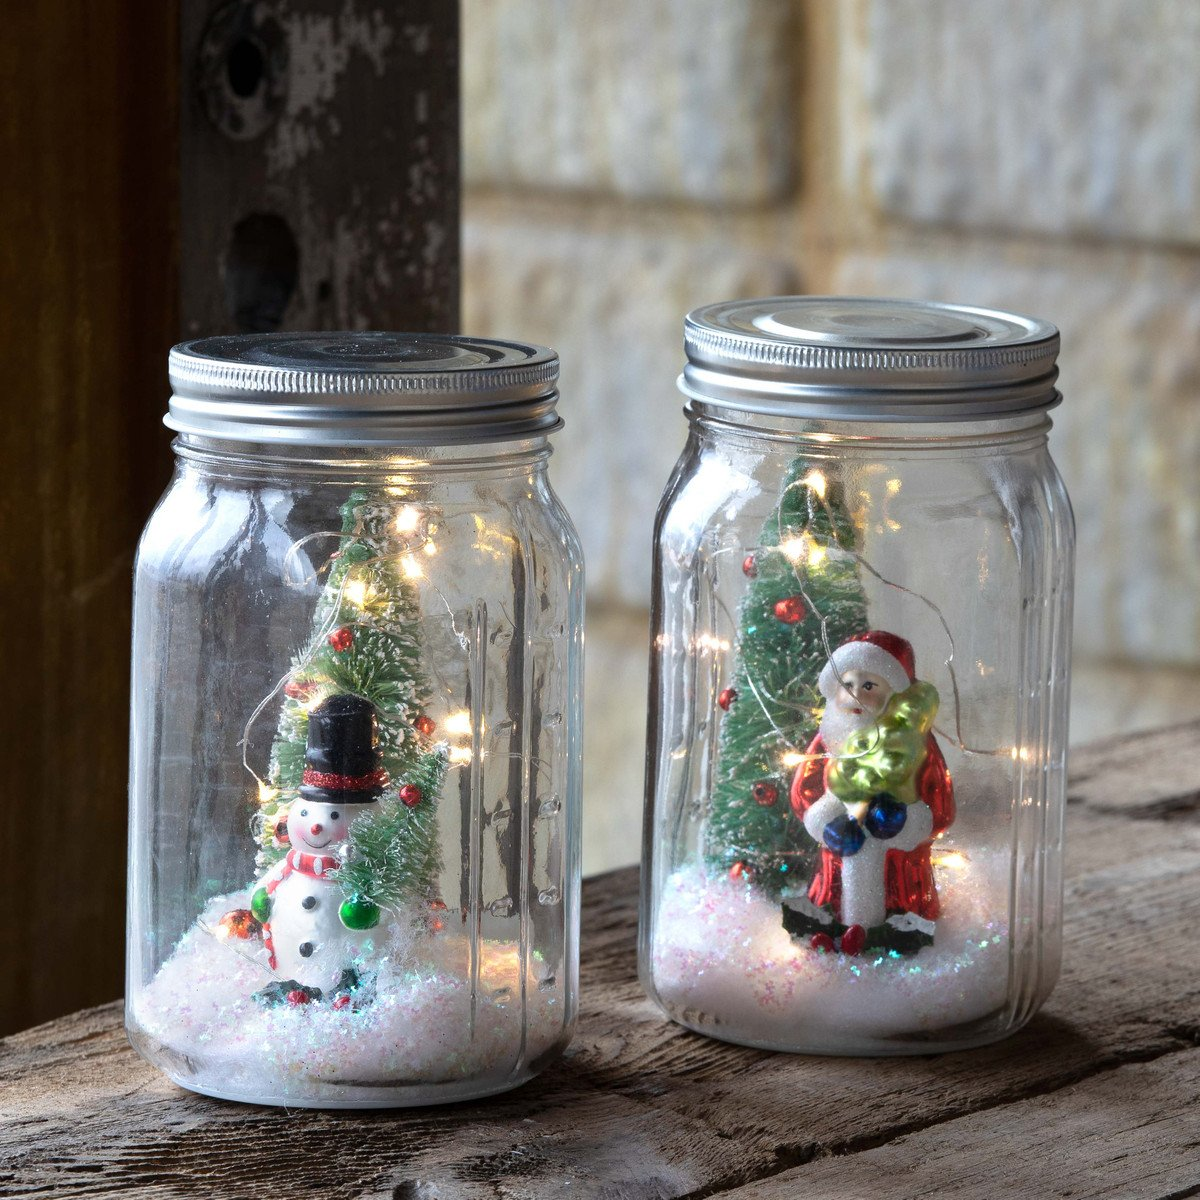 Snowman and Santa Lighted Filled Canning Jar - Set of 2 Assorted Styles